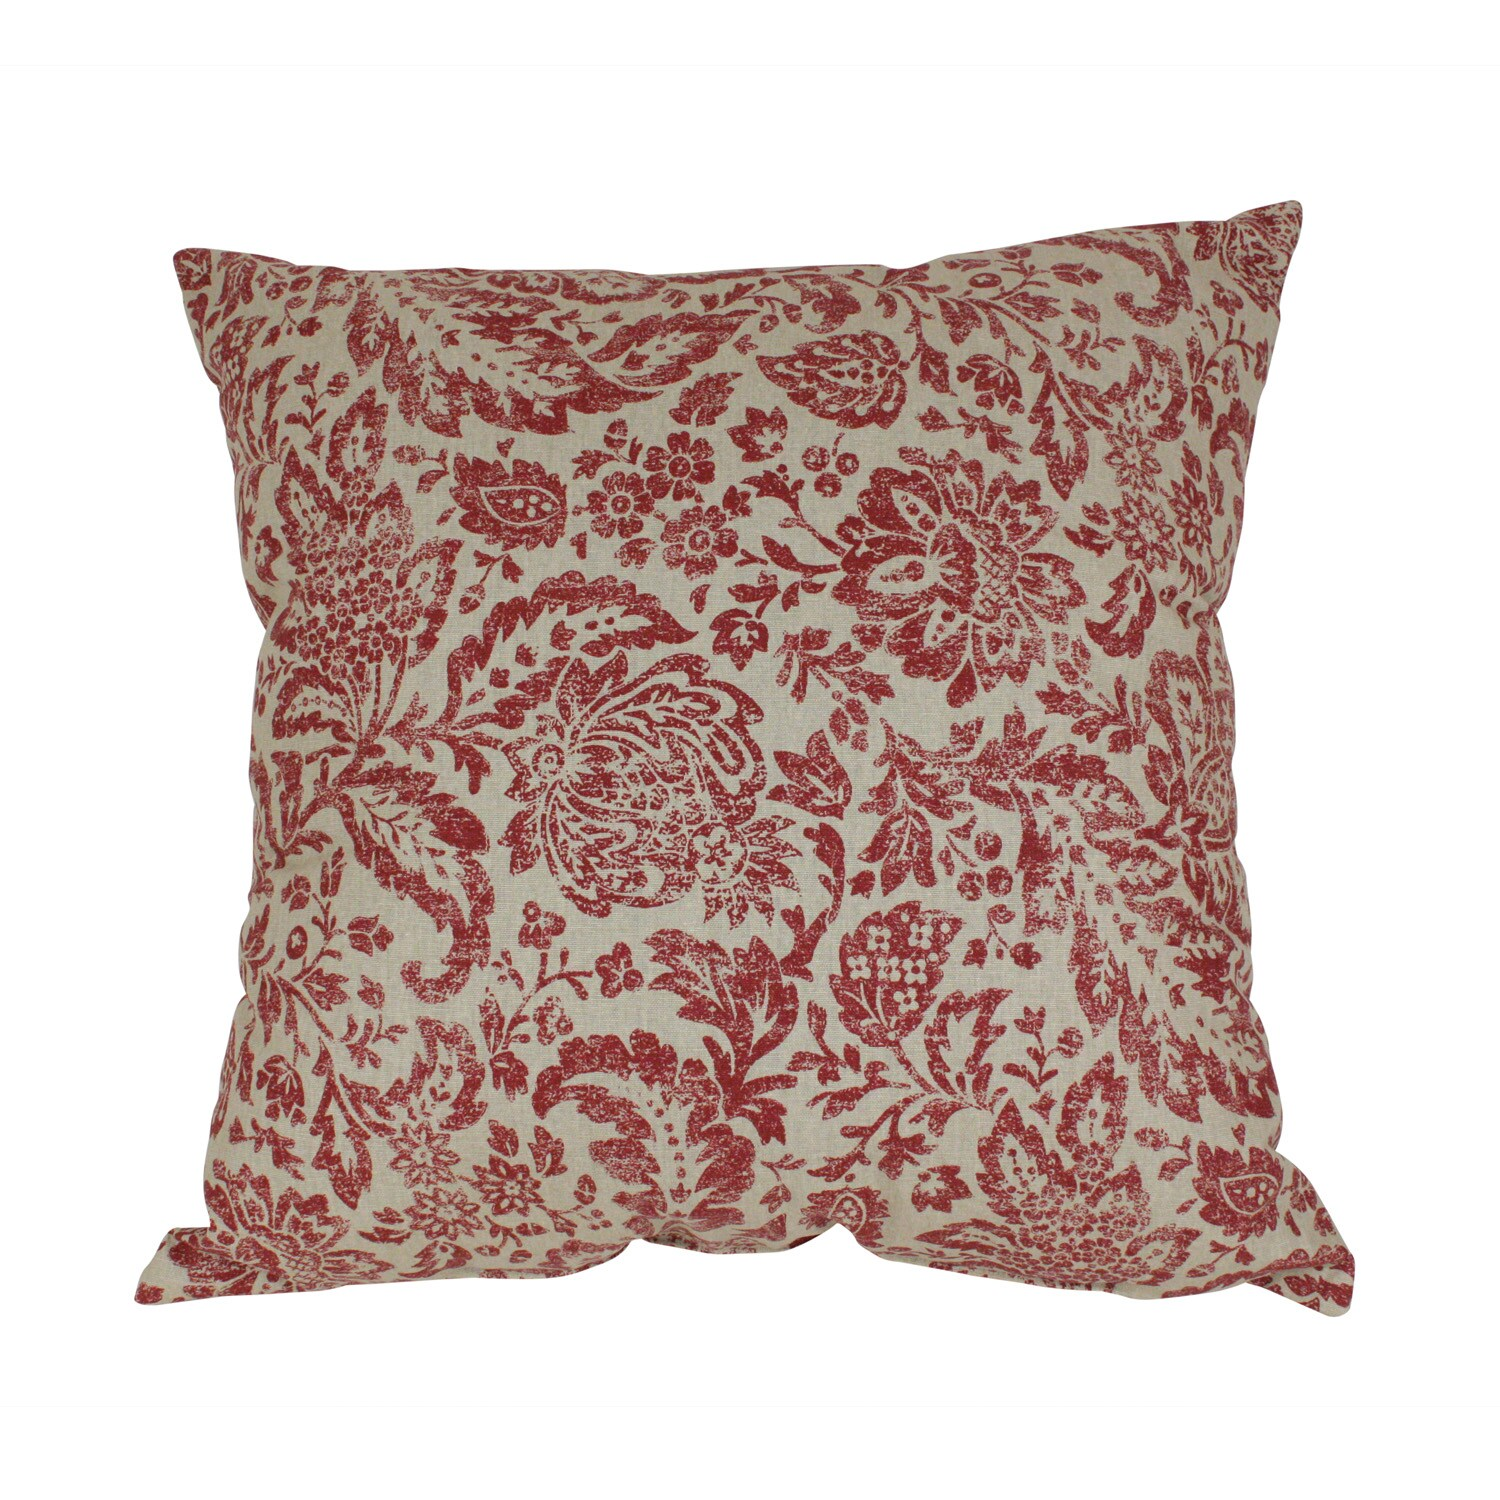 Red And Tan Decorative Pillows : Pillow Perfect Decorative Red and Tan Damask Pillow - Free Shipping Today - Overstock.com - 14034851